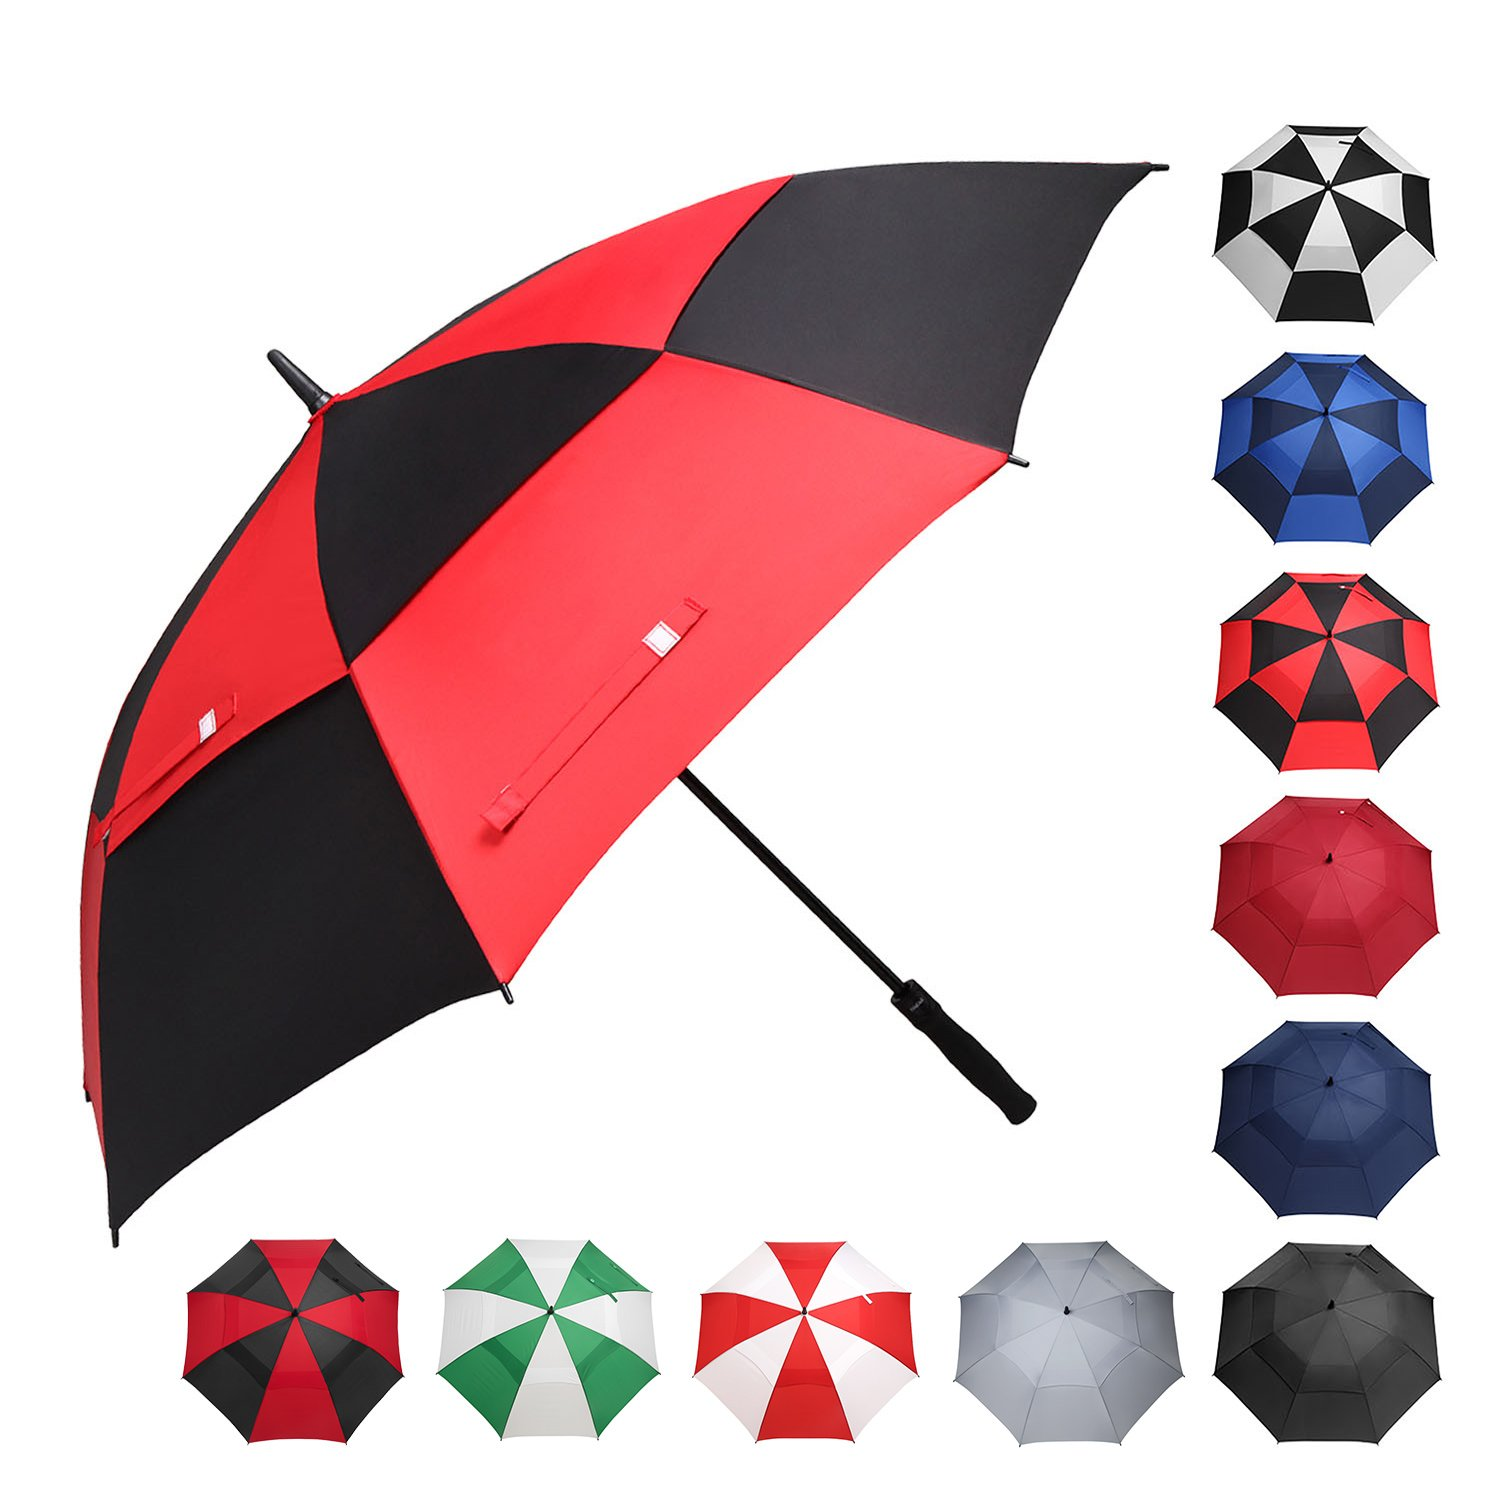 BAGAIL Golf Umbrella 68/62/58 Inch Large Oversize Double Canopy Vented Windproof Waterproof Automatic Open Stick Umbrellas for Men and Women (Black Red, 58 inch) by BAGAIL